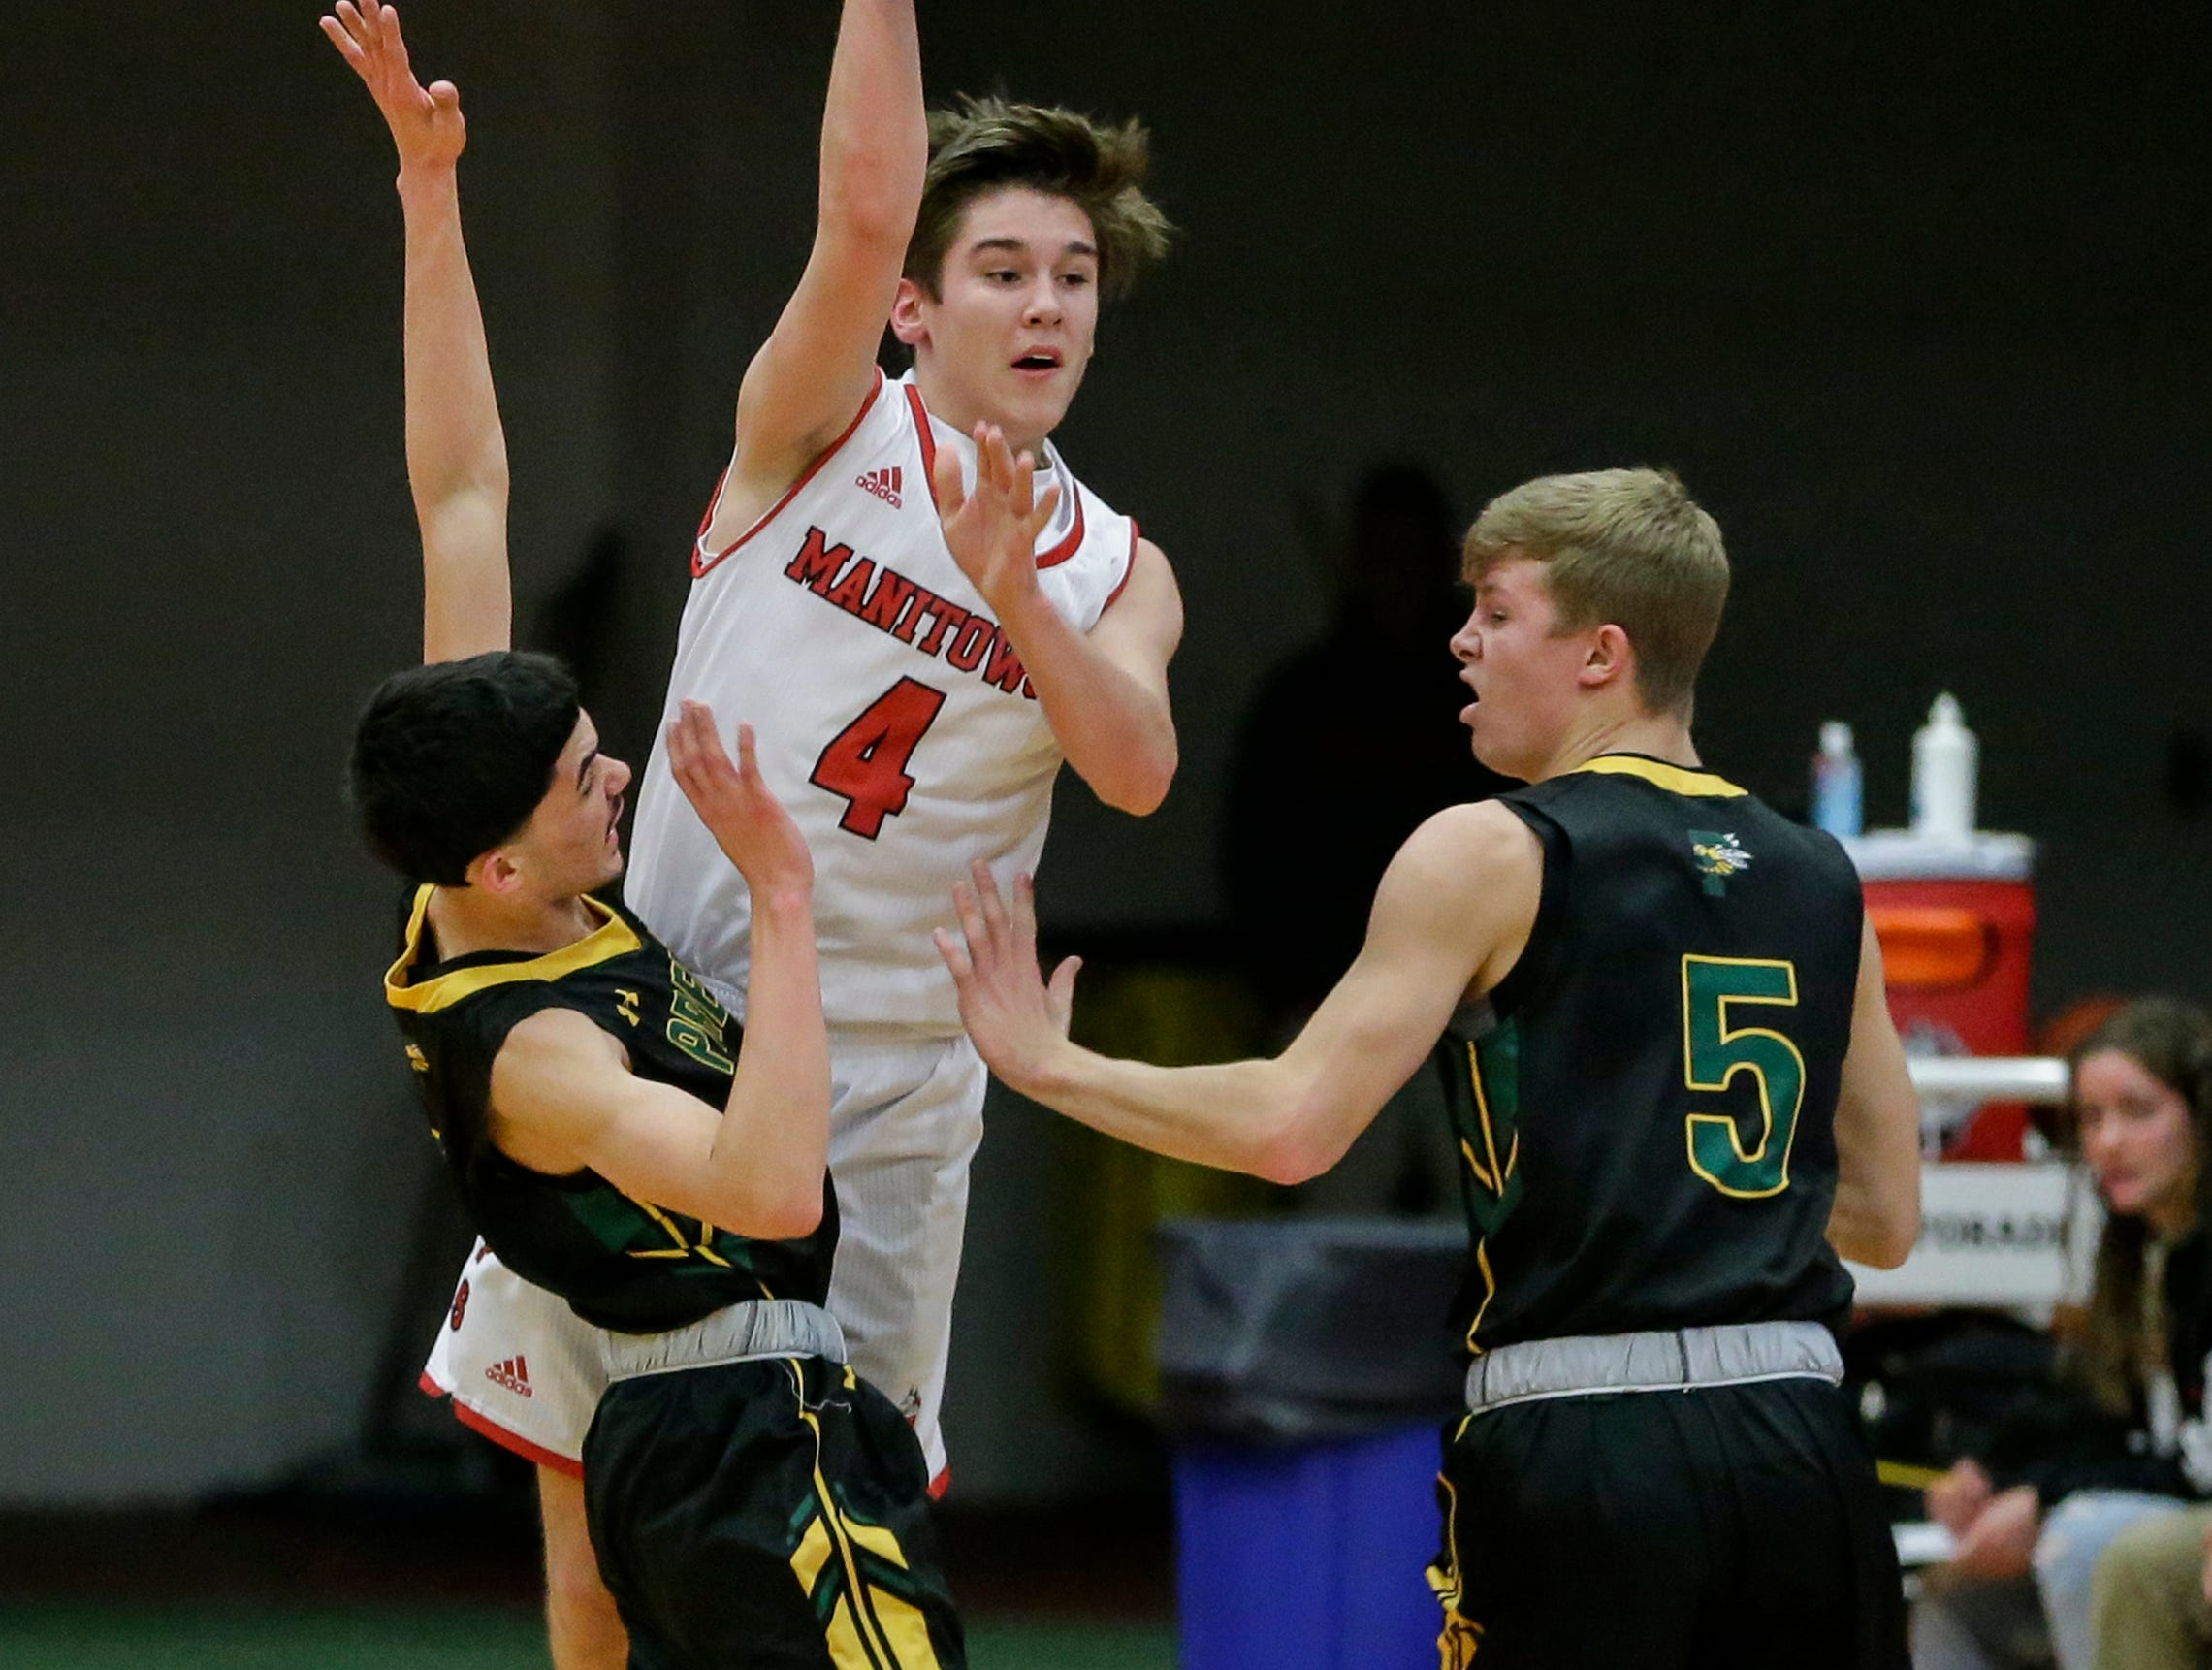 Manitowoc Lincoln's Mason Dopirak looks for an open man as Green Bay Preble puts on pressure during boys FRCC basketball at Manitowoc Lincoln High School Friday, December 21, 2018, in Manitowoc, Wis. Joshua Clark/USA TODAY NETWORK-Wisconsin